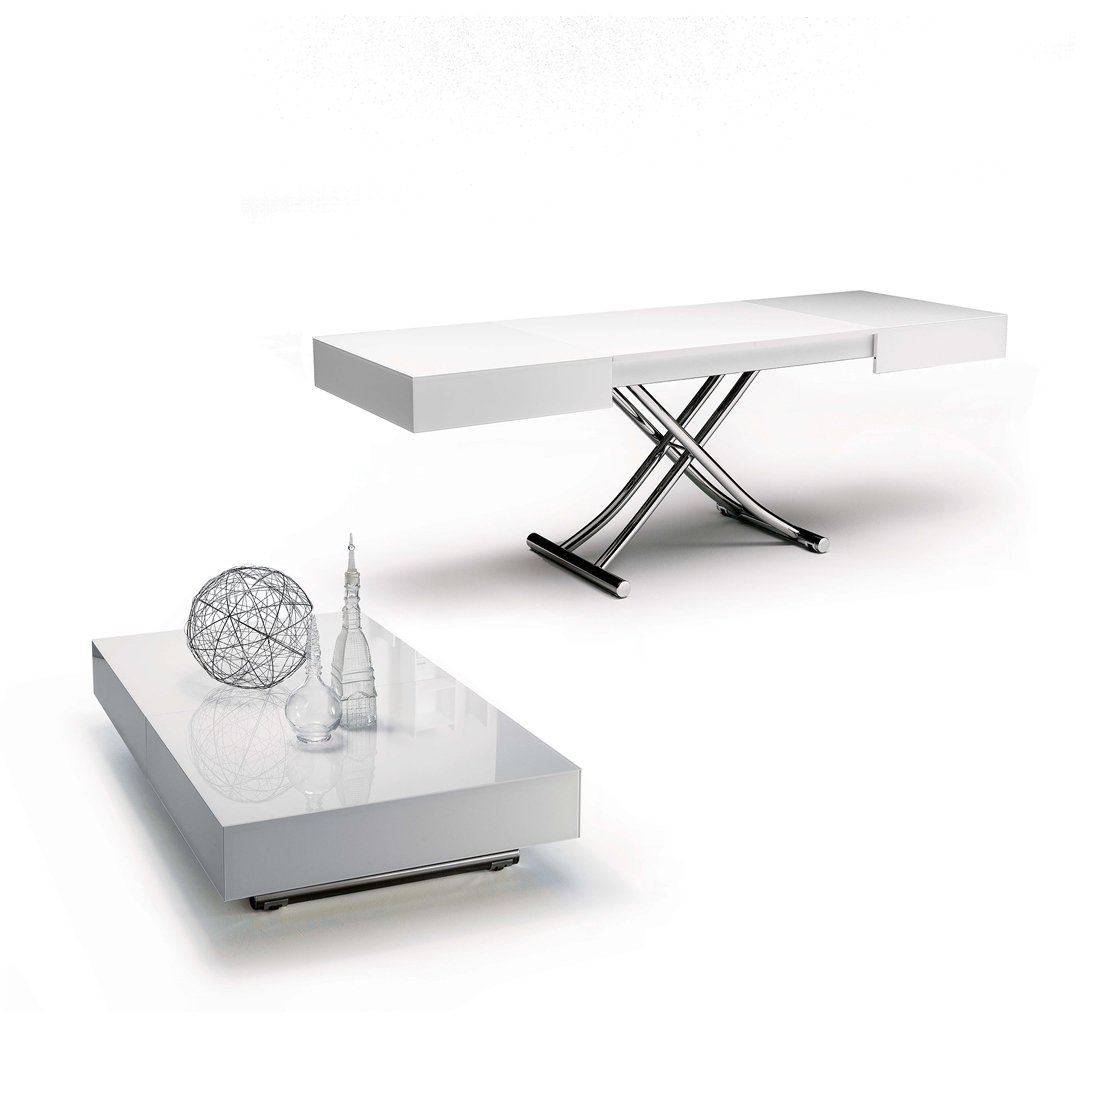 Table basse relevable paris meubles et atmosph re - Table basse relevable avec rallonge ...